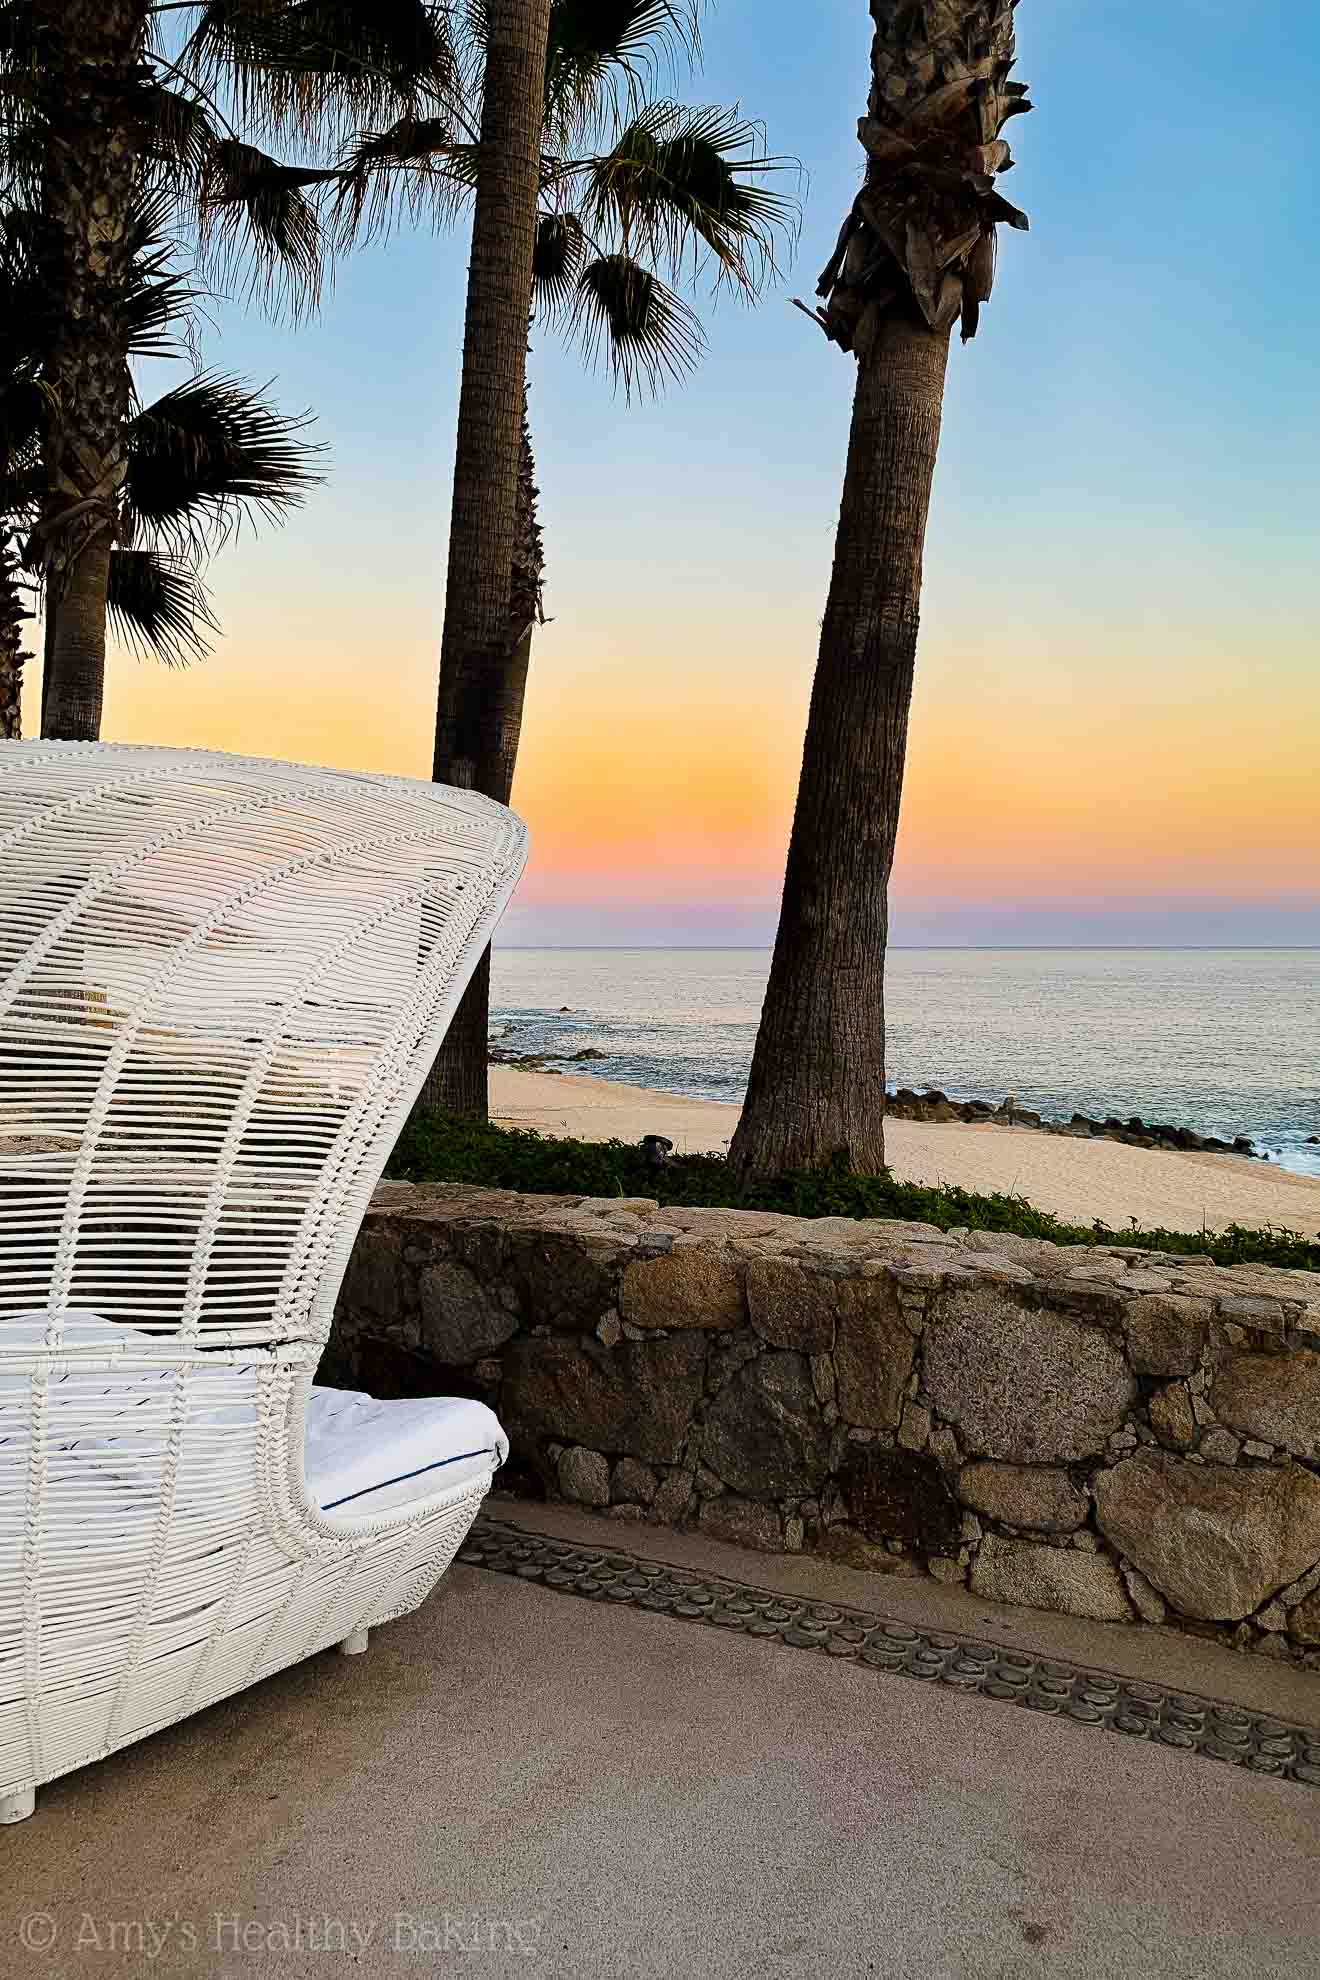 Poolside wicker cabana overlooking a beach at sunset in Los Cabos, Mexico